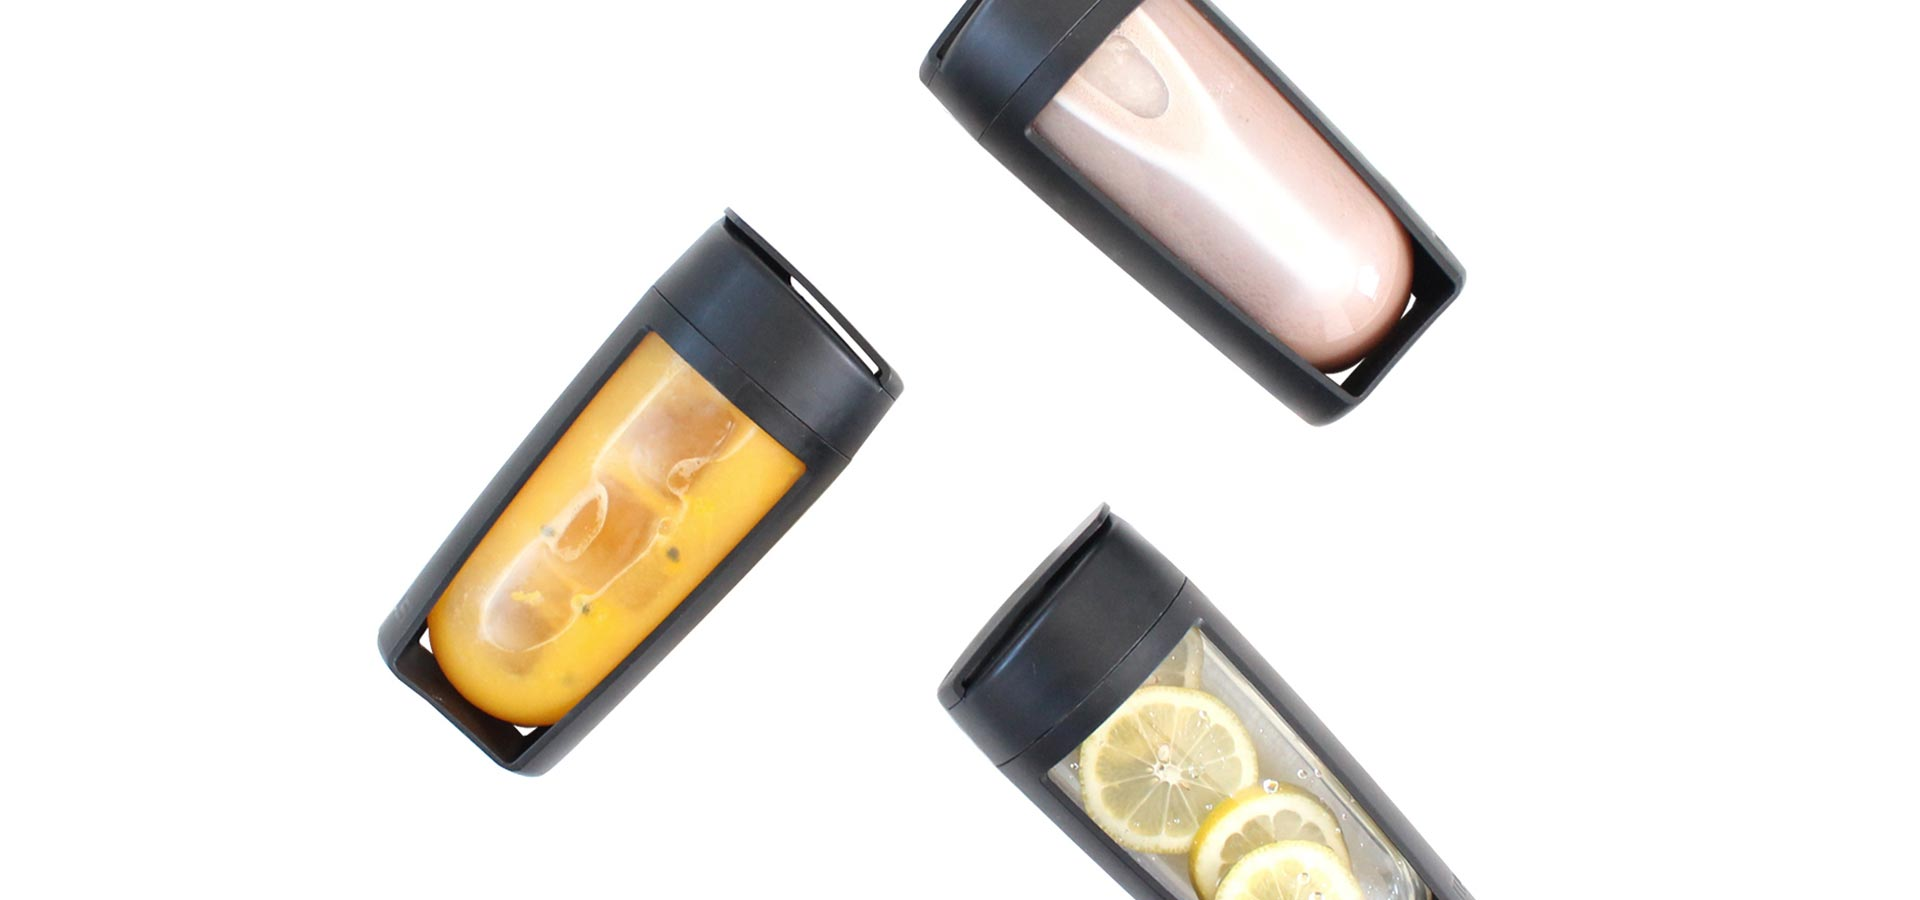 the mous fitness bottle so many uses water infuser shaker bottle and smoothie bottle